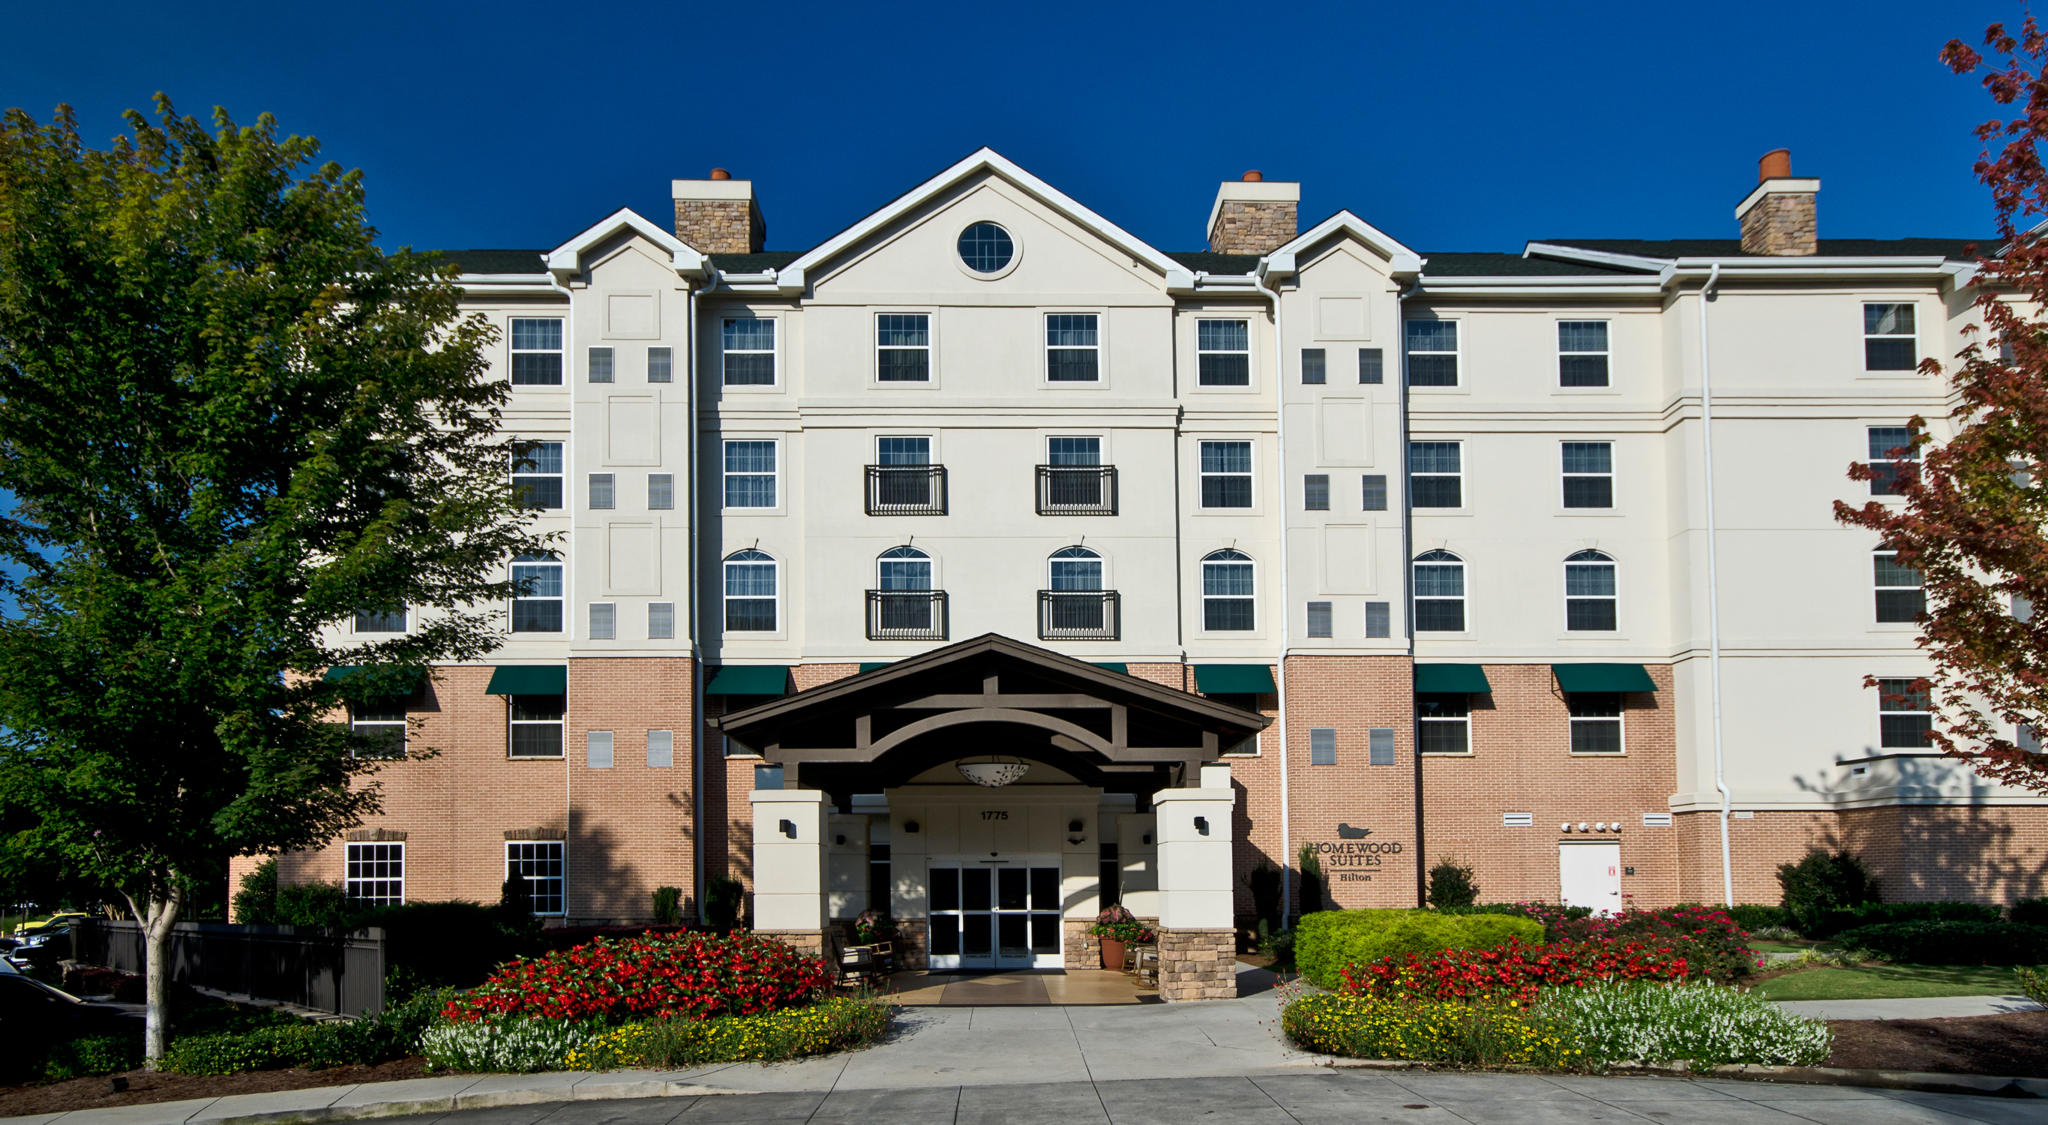 Homewood Suites Atlanta/Lawrenceville GA